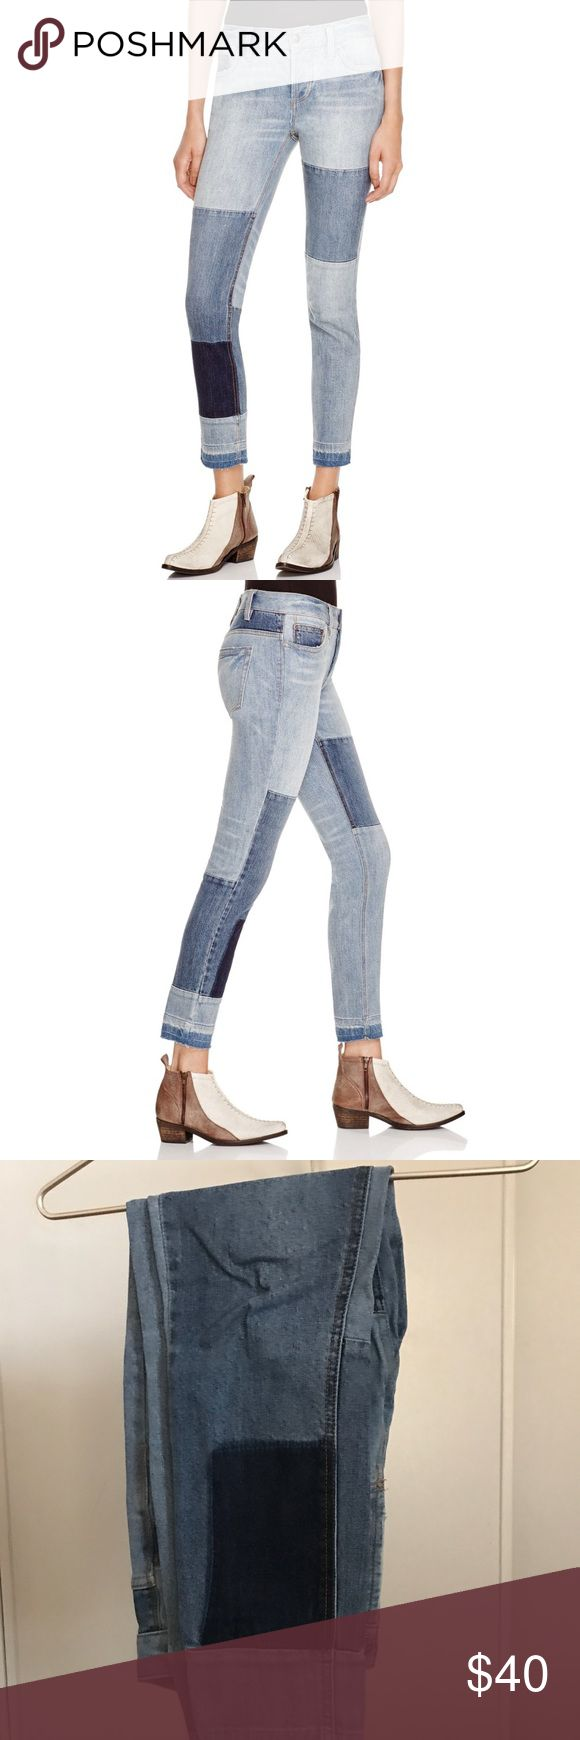 Free People Patchwork Jean - Size 27 Cute cutoff jeans with patch detailing from Free People! No longer sold online. Great condition and a stretchy, comfortable material!  They're a size 27 and fit true to size!   *no trades or lowball offers please* Free People Jeans